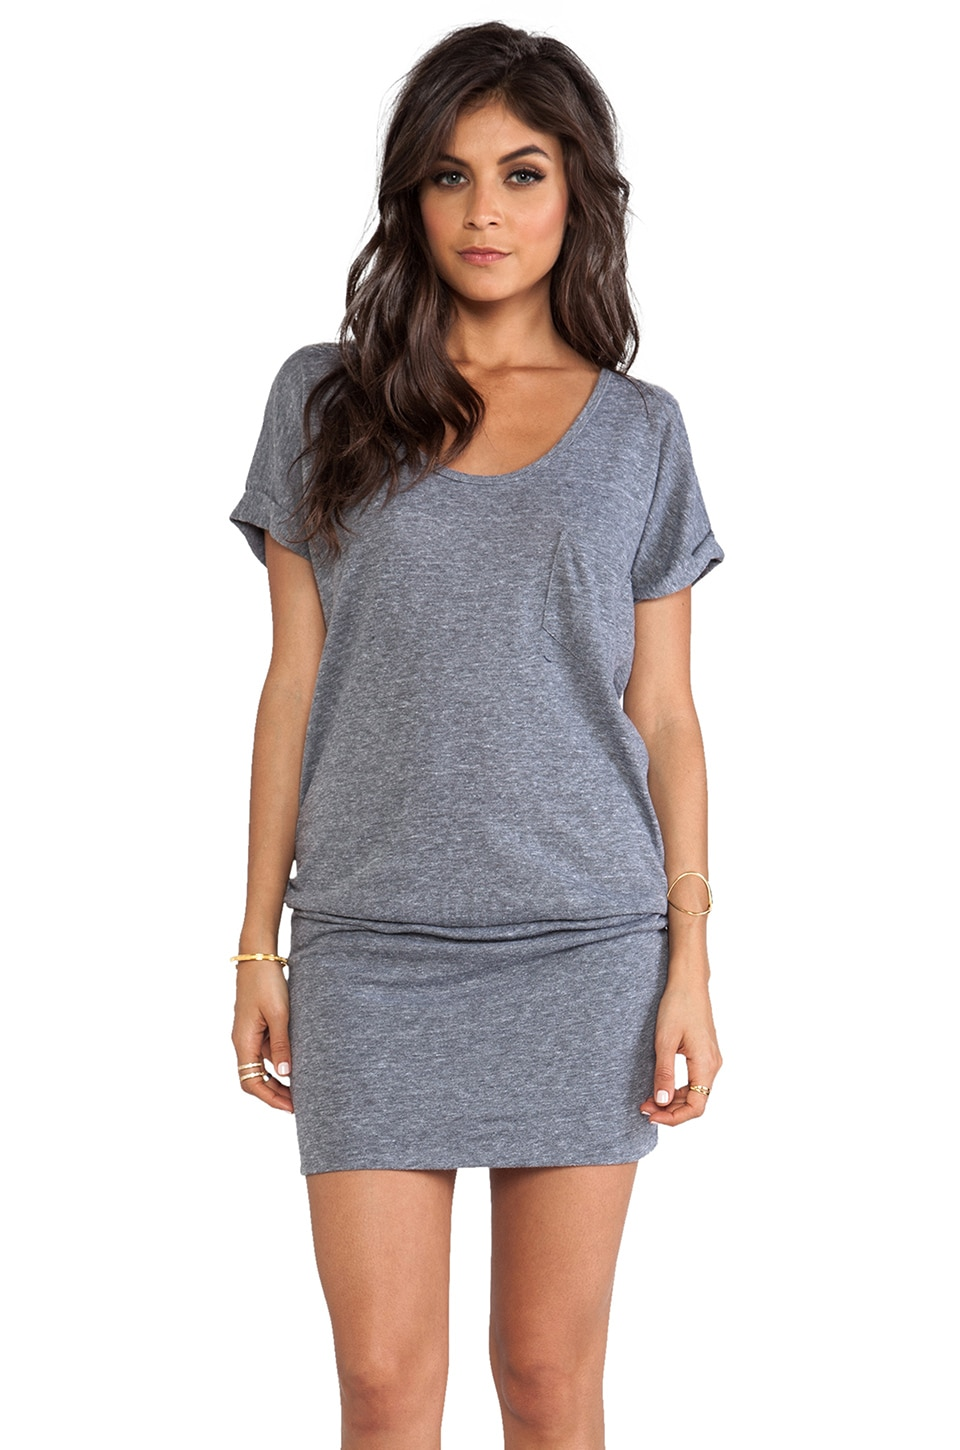 C&C California Short Sleeve Blouson Dress in Heather Grey